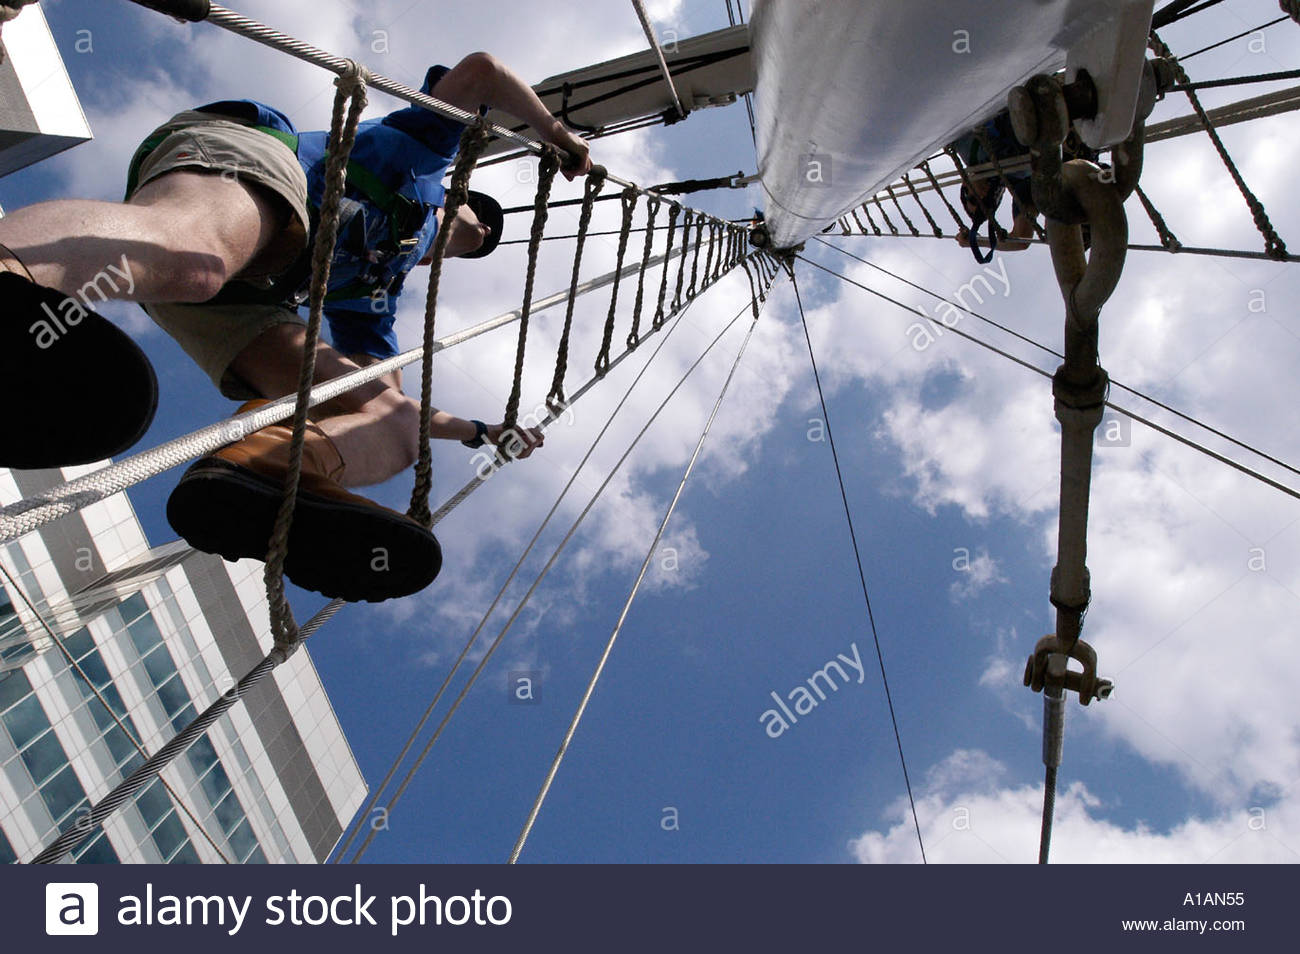 volunteer climb height sky ship boat rope ladder Stock Photo ... for Rope Ladder Ship  155sfw